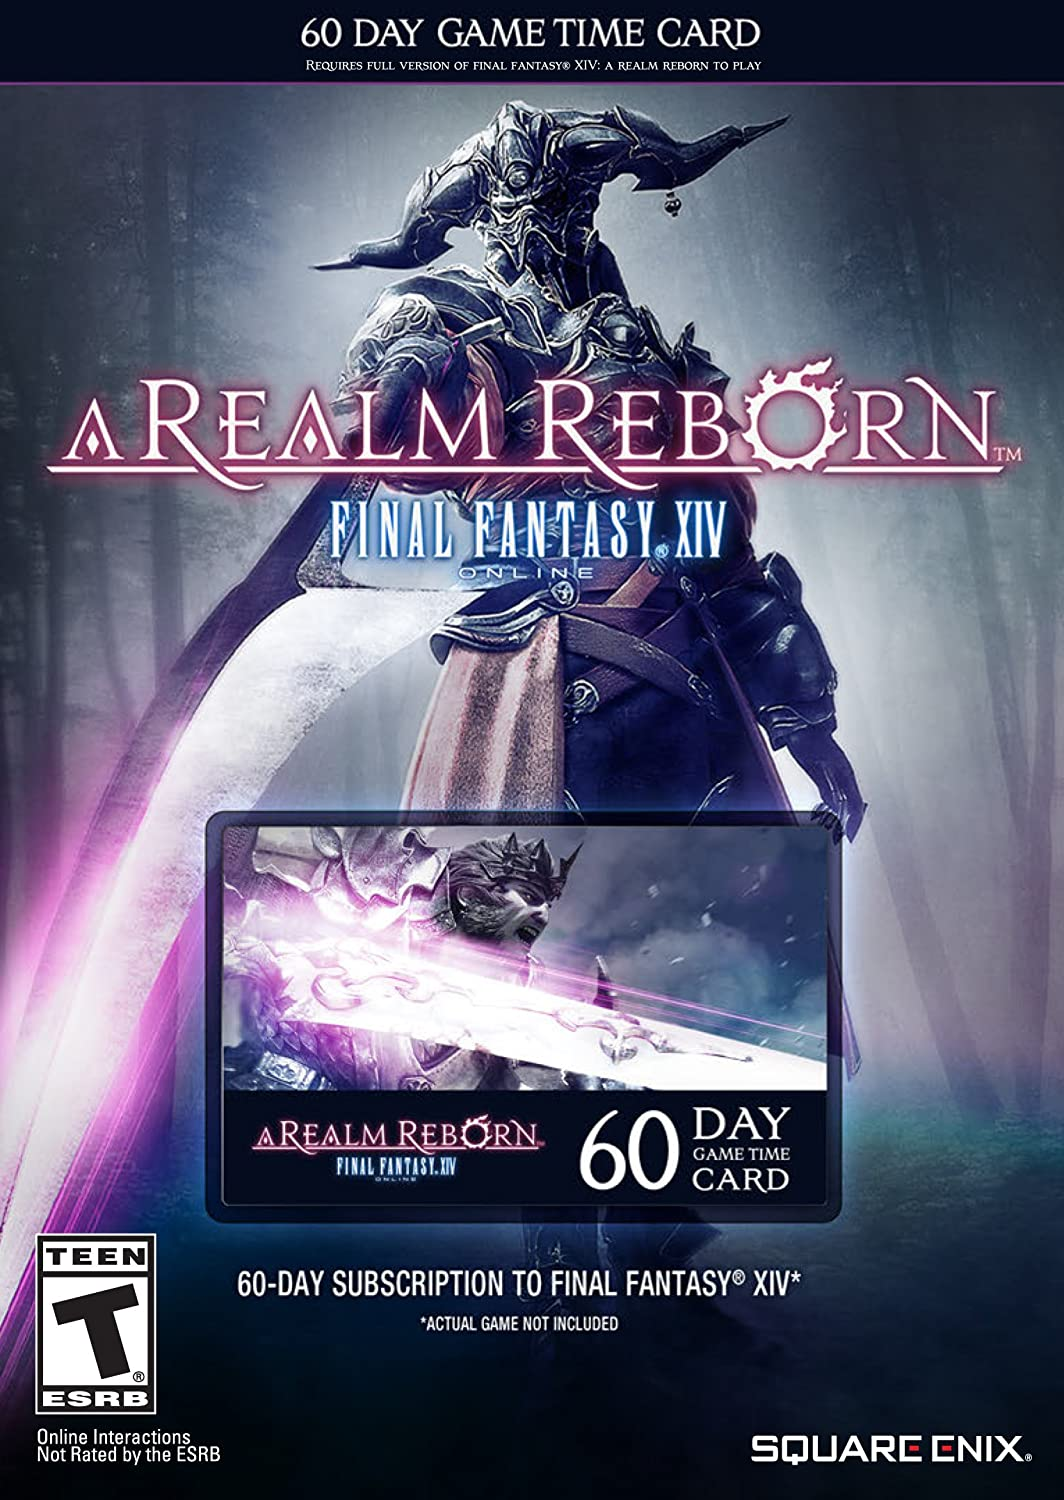 amazoncom final fantasy xiv a realm reborn 60 day time card video games - Online Time Card